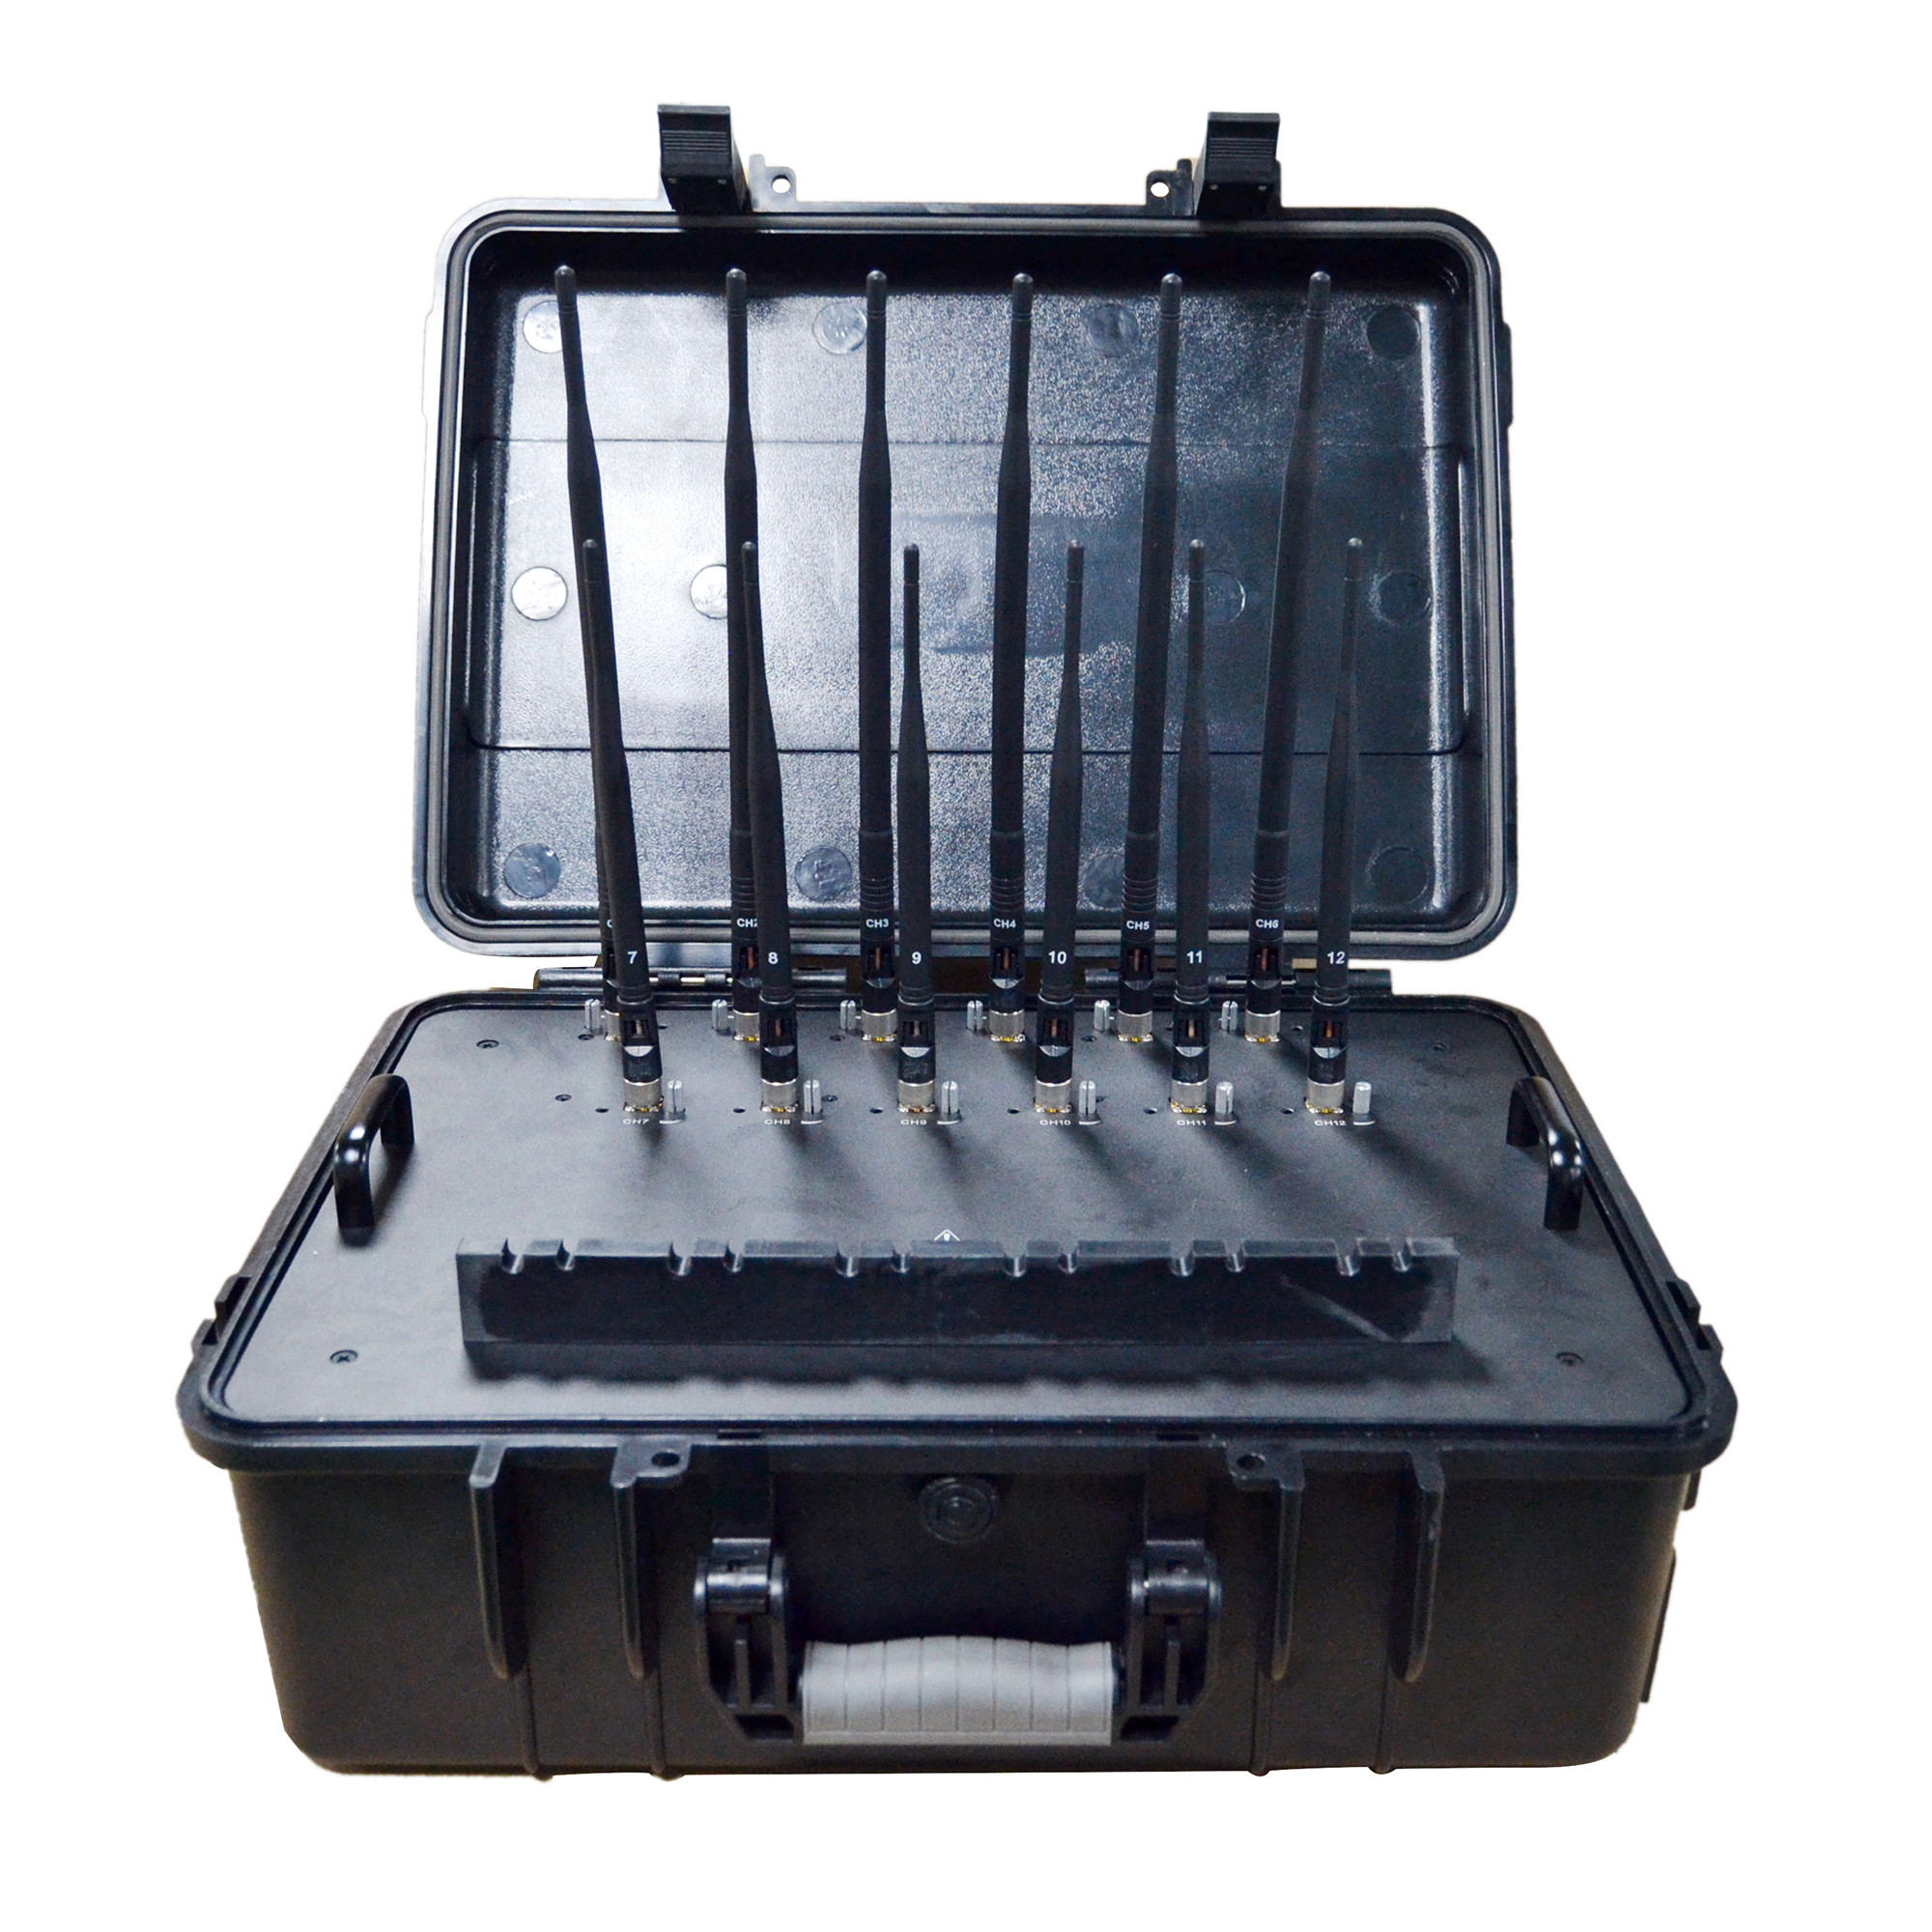 Jammer market - 320W High Power GPS,WIFI & Cell Phone Multi Band Jammer (Waterproof & shockproof design)